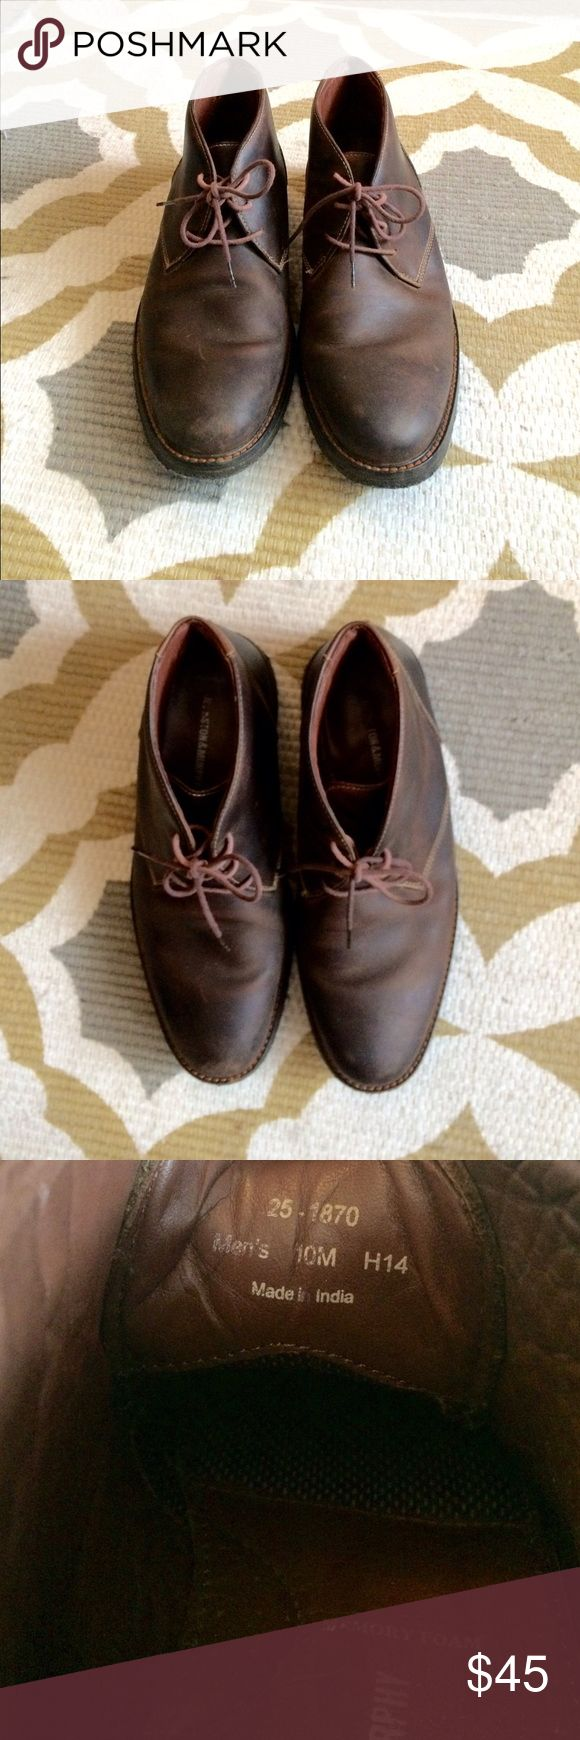 Mens Johnston and Murphy Boots! These boots are in great shape and are made in America. They retail at $150 and are very lightly worn! Let me know if you have any questions! :) Johnston & Murphy Shoes Boots